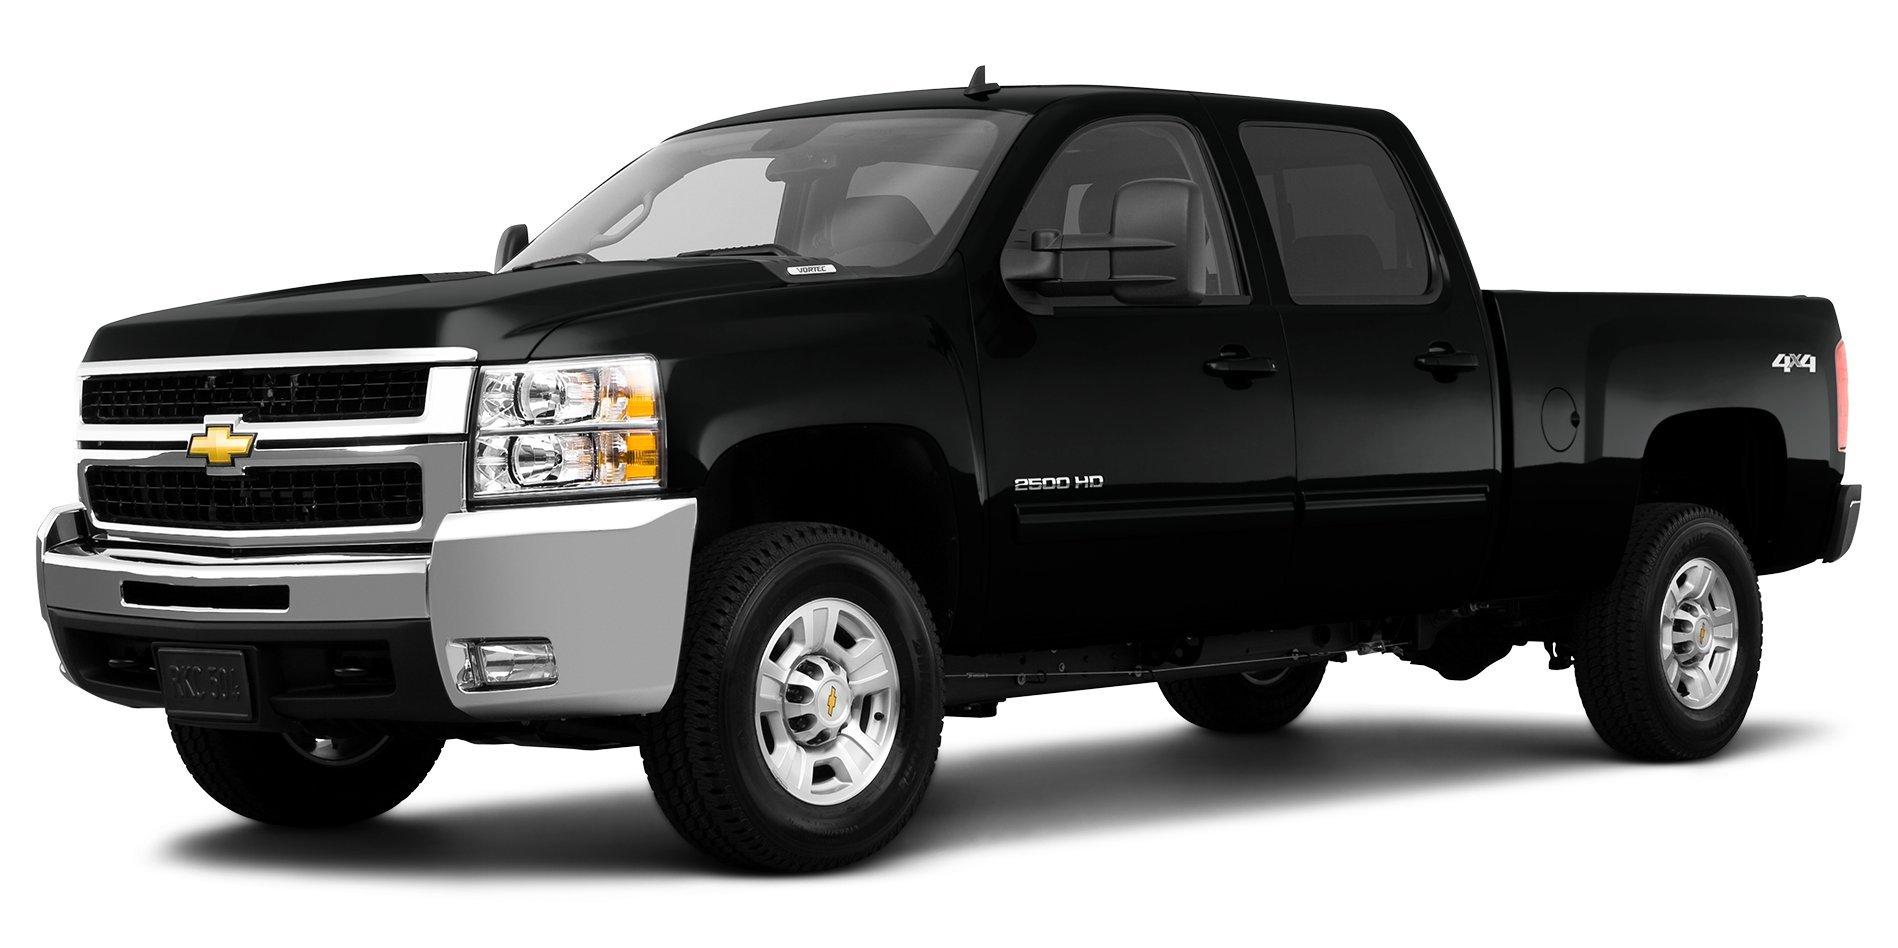 Silverado 2010 chevrolet silverado 2500 : Amazon.com: 2010 Chevrolet Silverado 2500 HD Reviews, Images, and ...